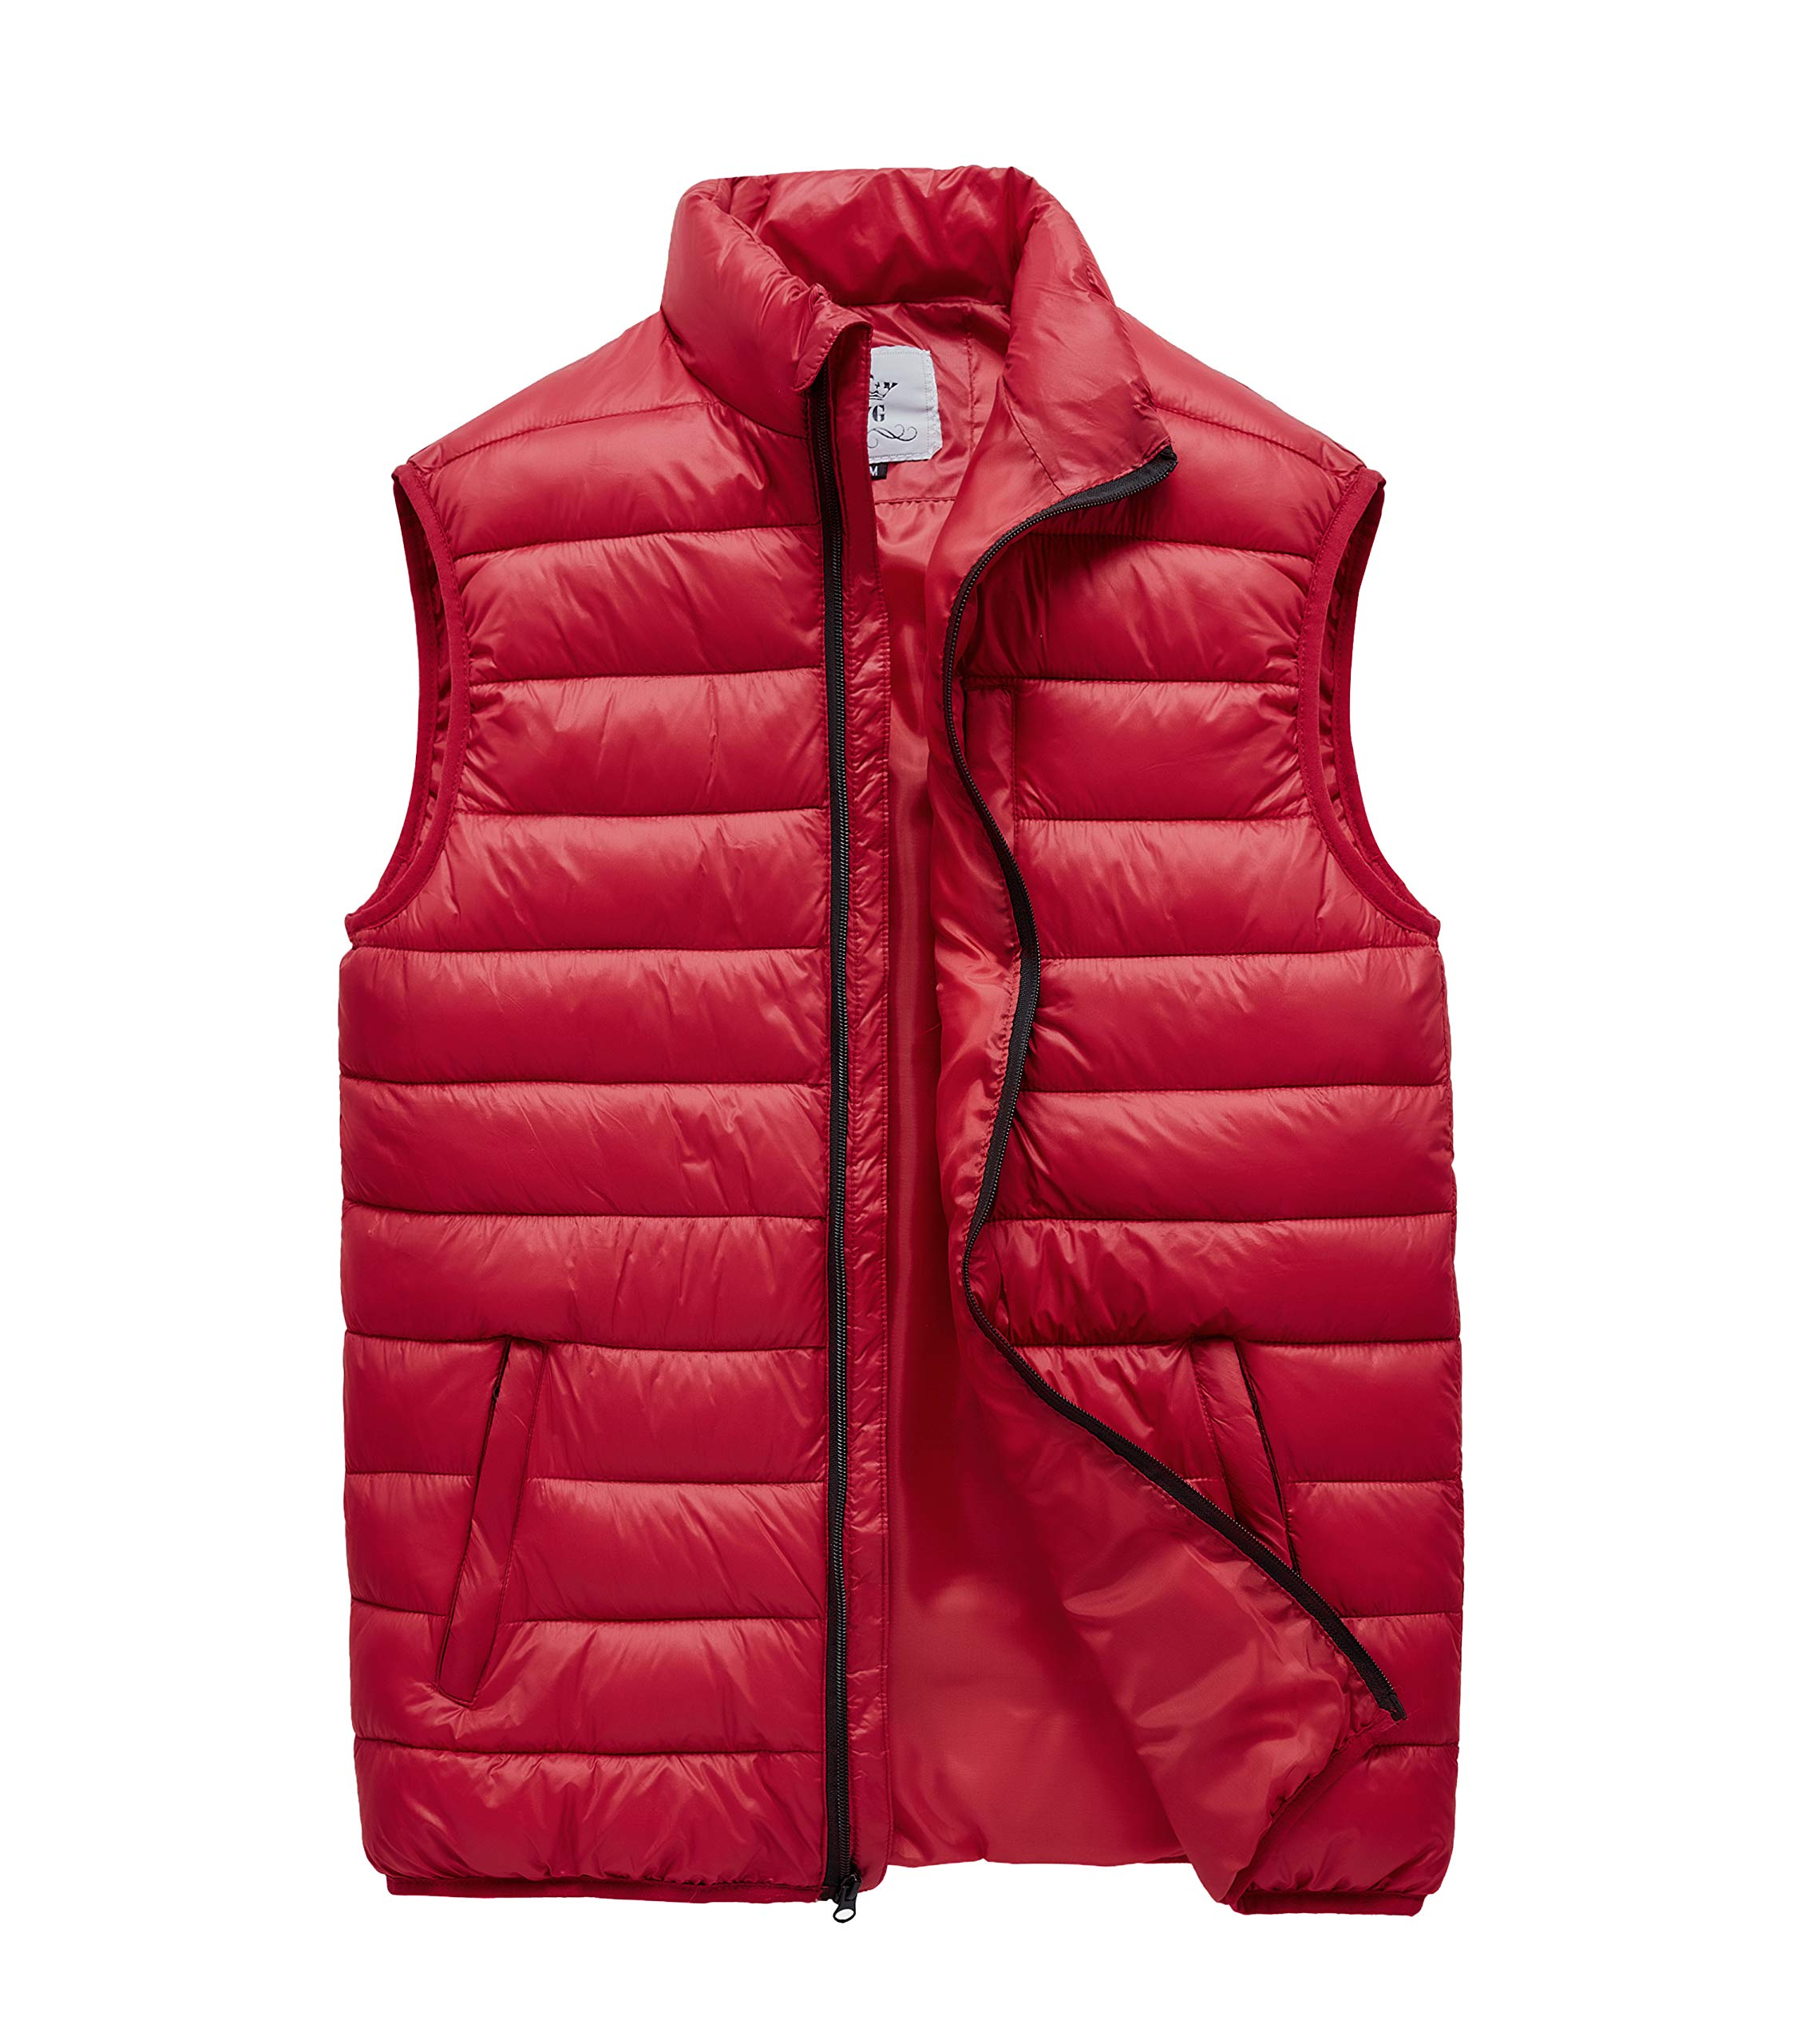 JYG Men's Winter Quilted Puffer Vest Red by JYG